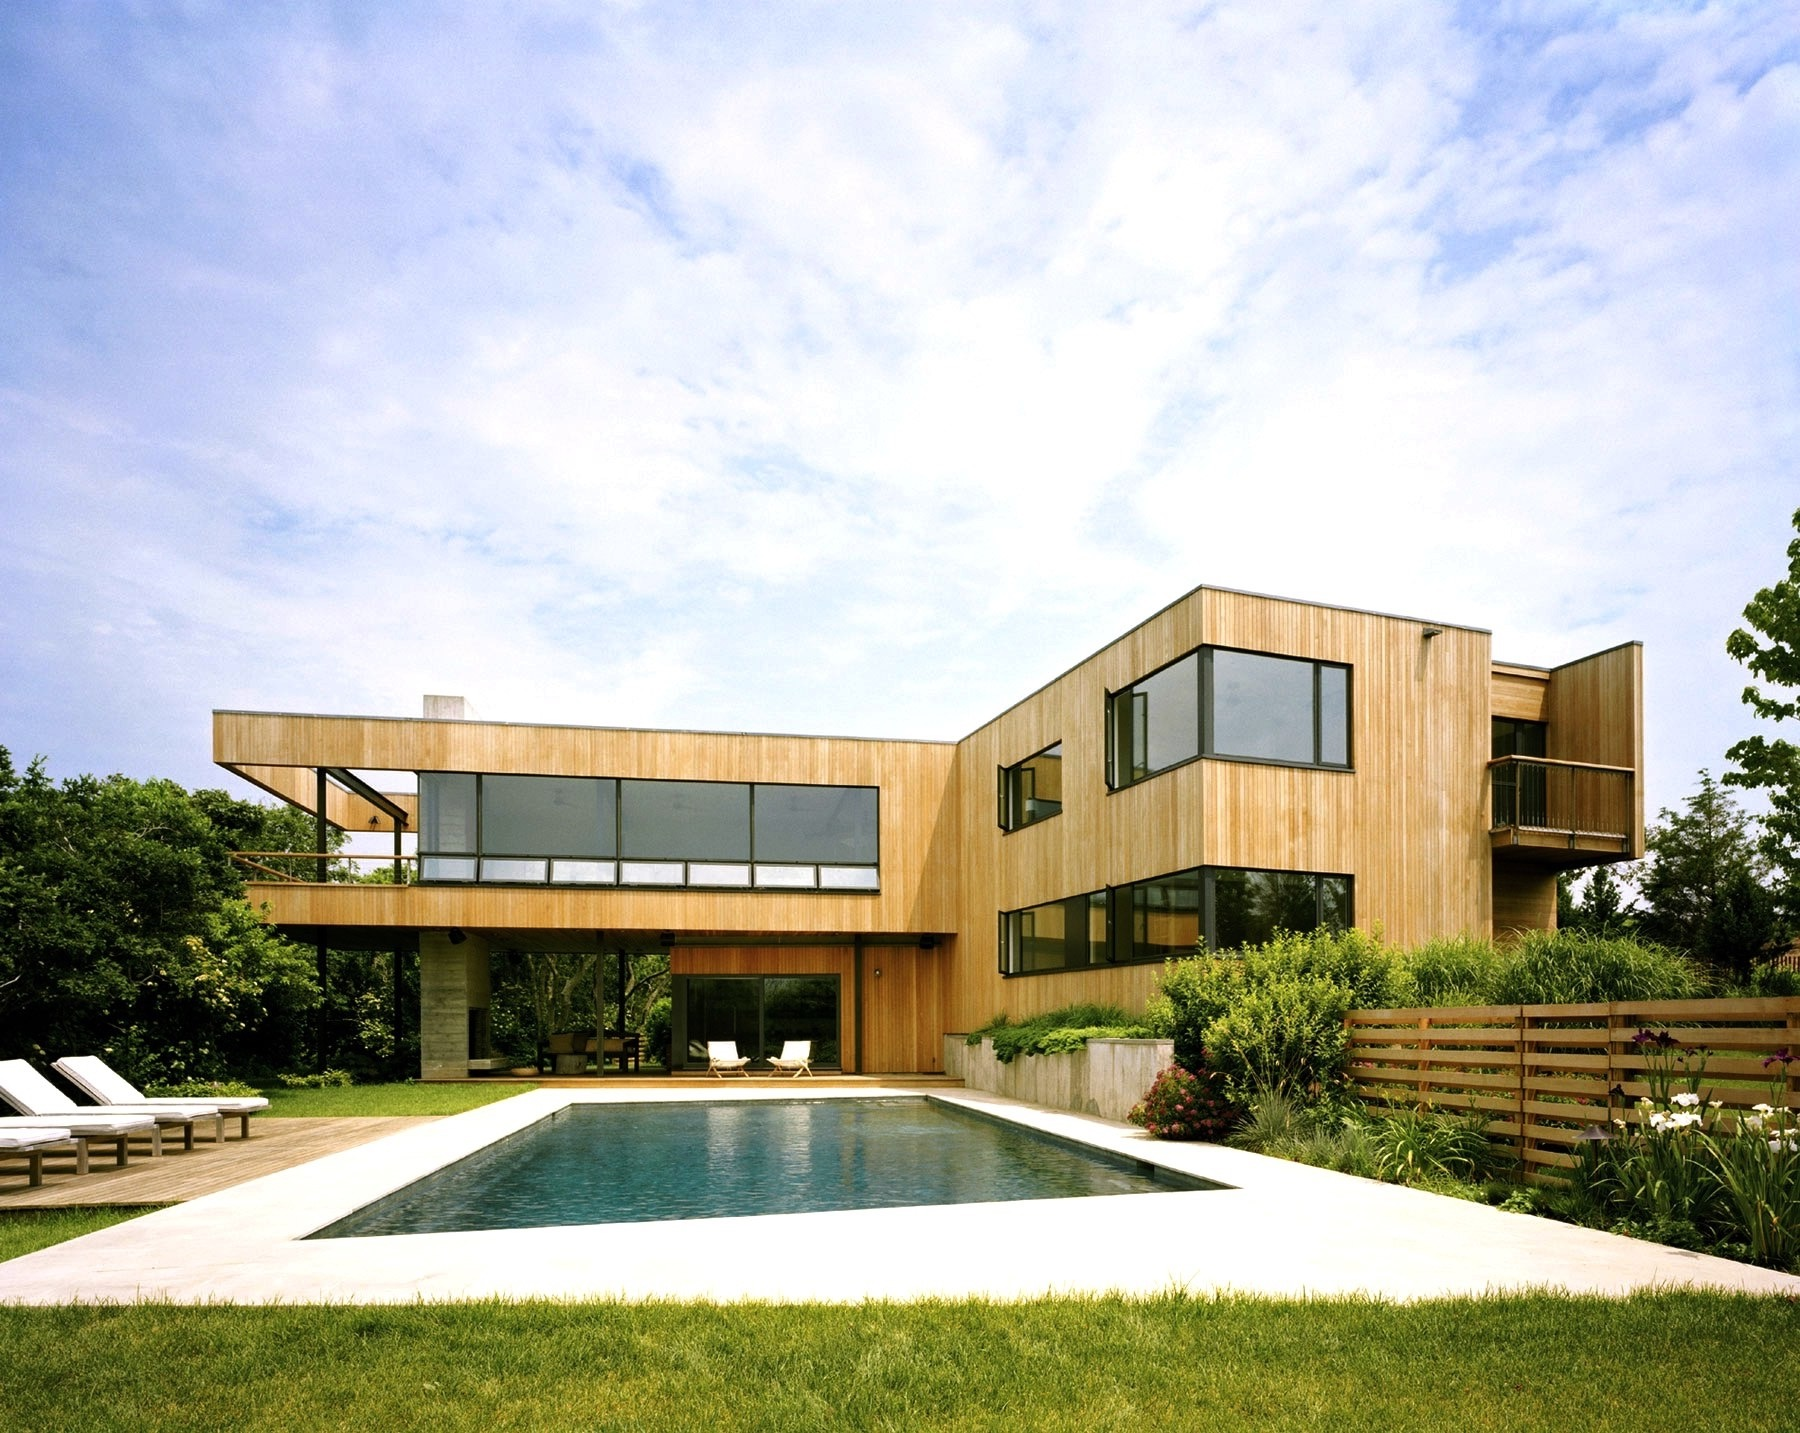 Stylish Swimming Pool For Contemporary House Exterior (Image 25 of 27)